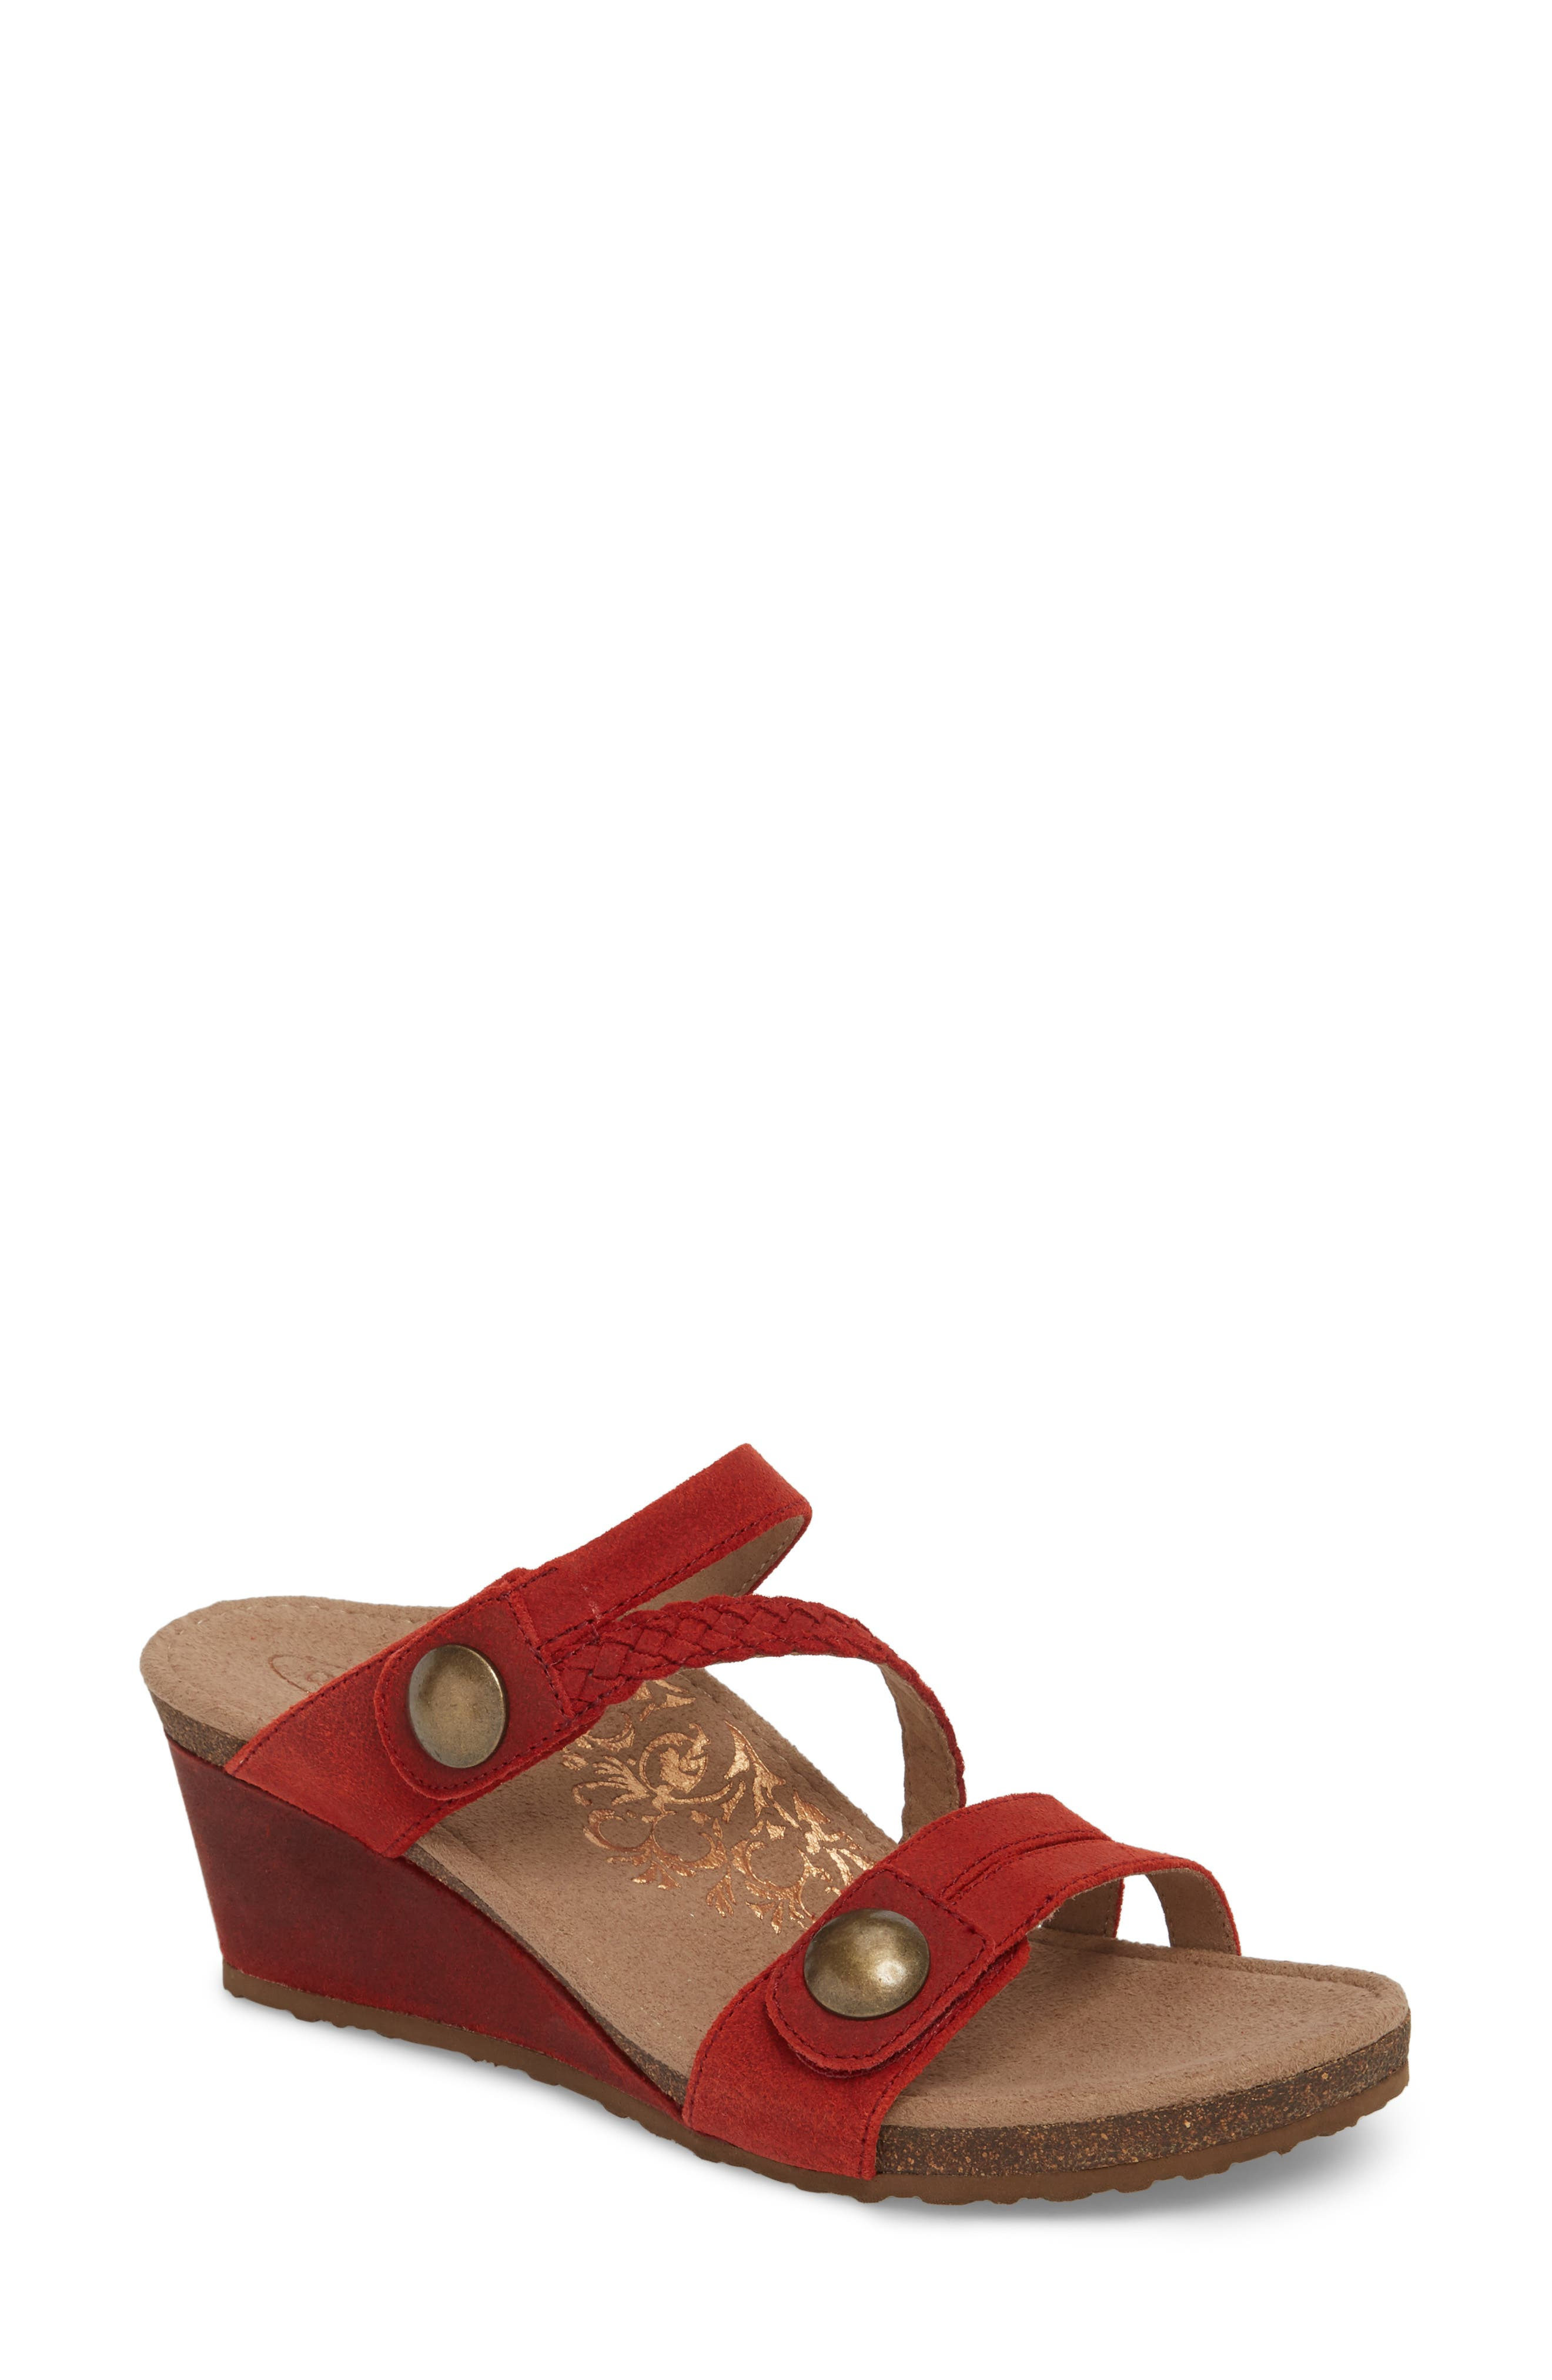 Lydia Strappy Wedge Sandal,                         Main,                         color, Cayenne Leather